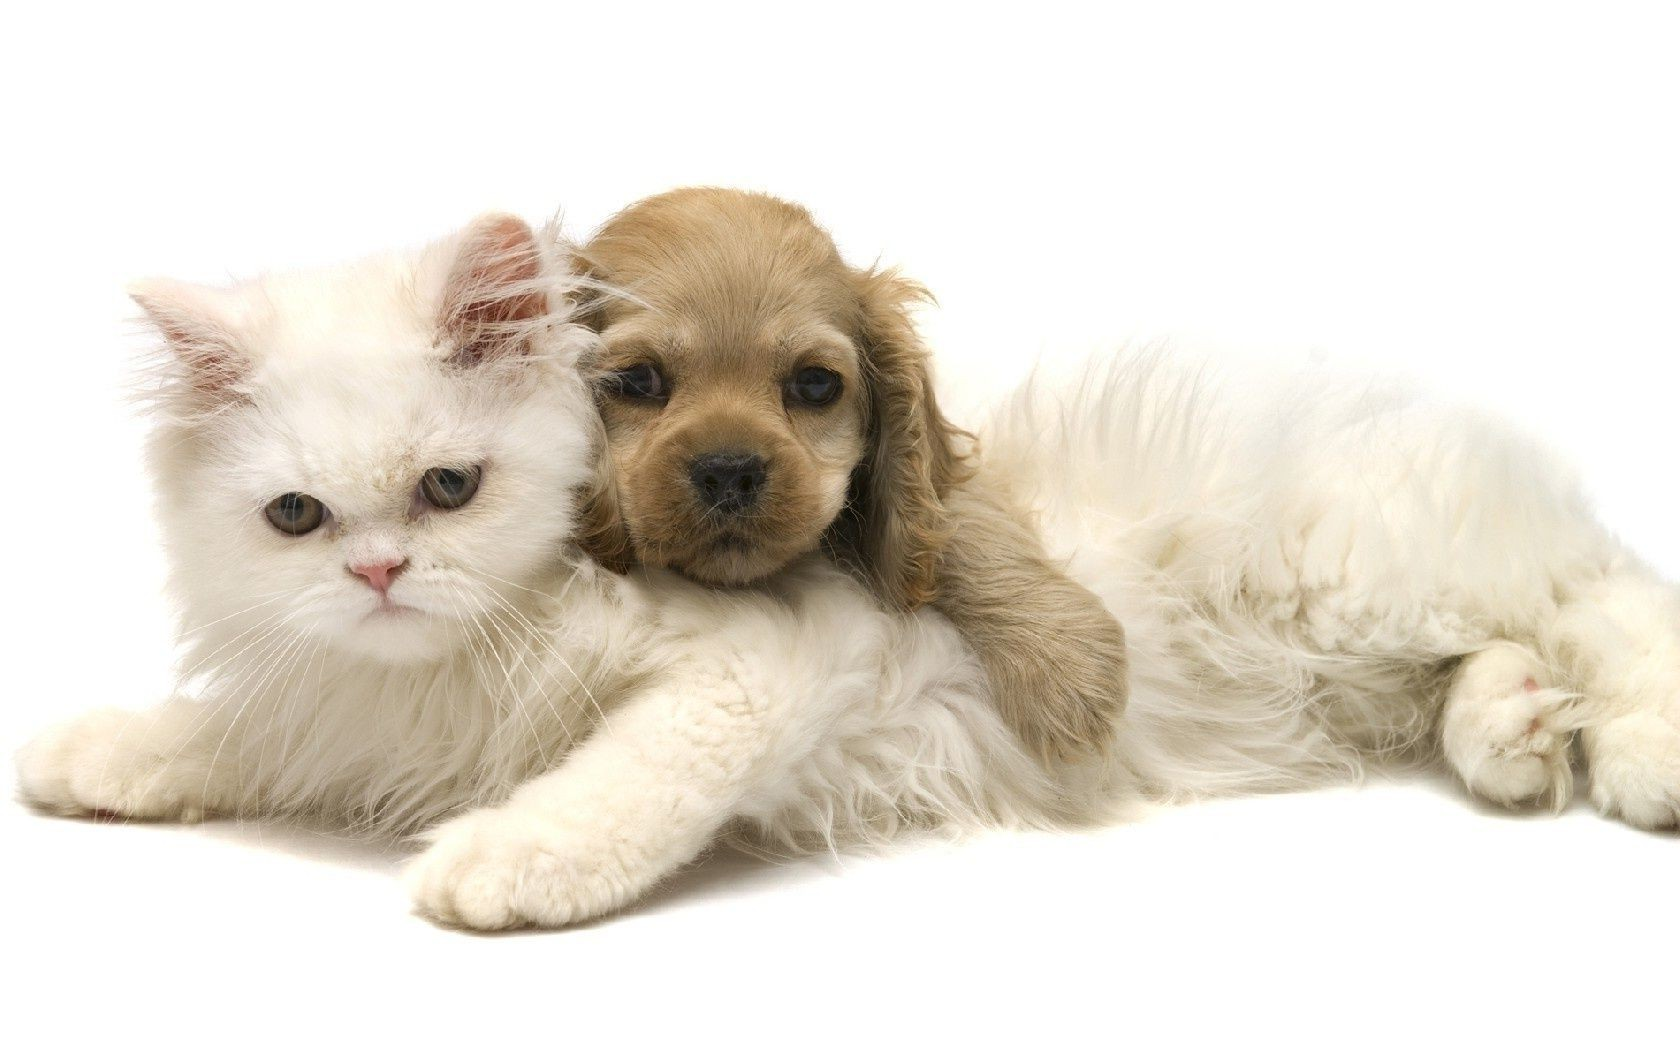 animals pet cute domestic animal purebred little studio adorable pedigree breed mammal fur young sit downy kitten puppy baby cat furry